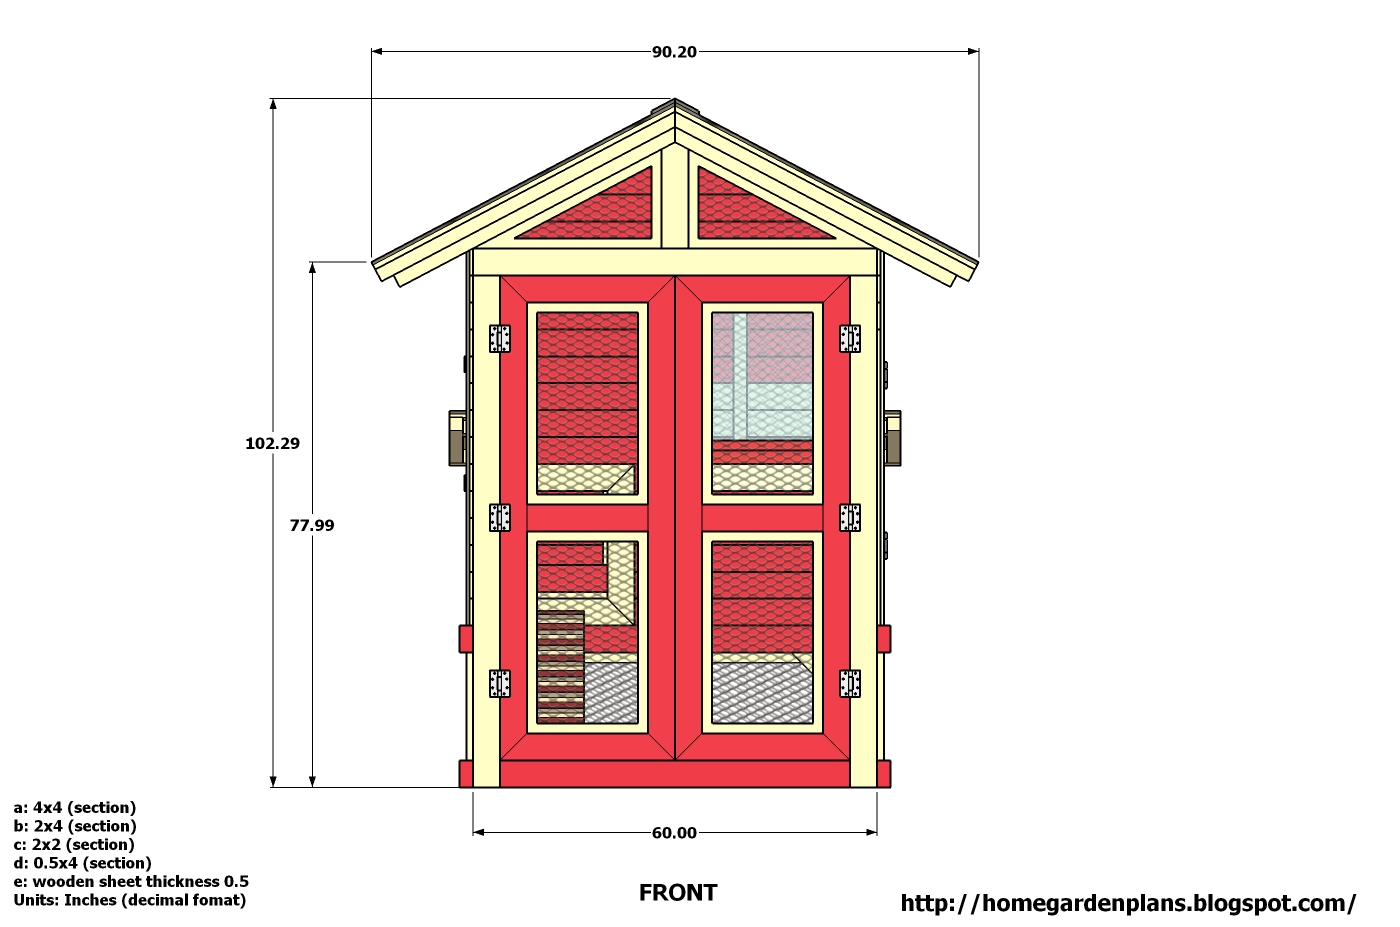 Home garden plans m102 chicken coop plans how to for Chicken coop dimensions